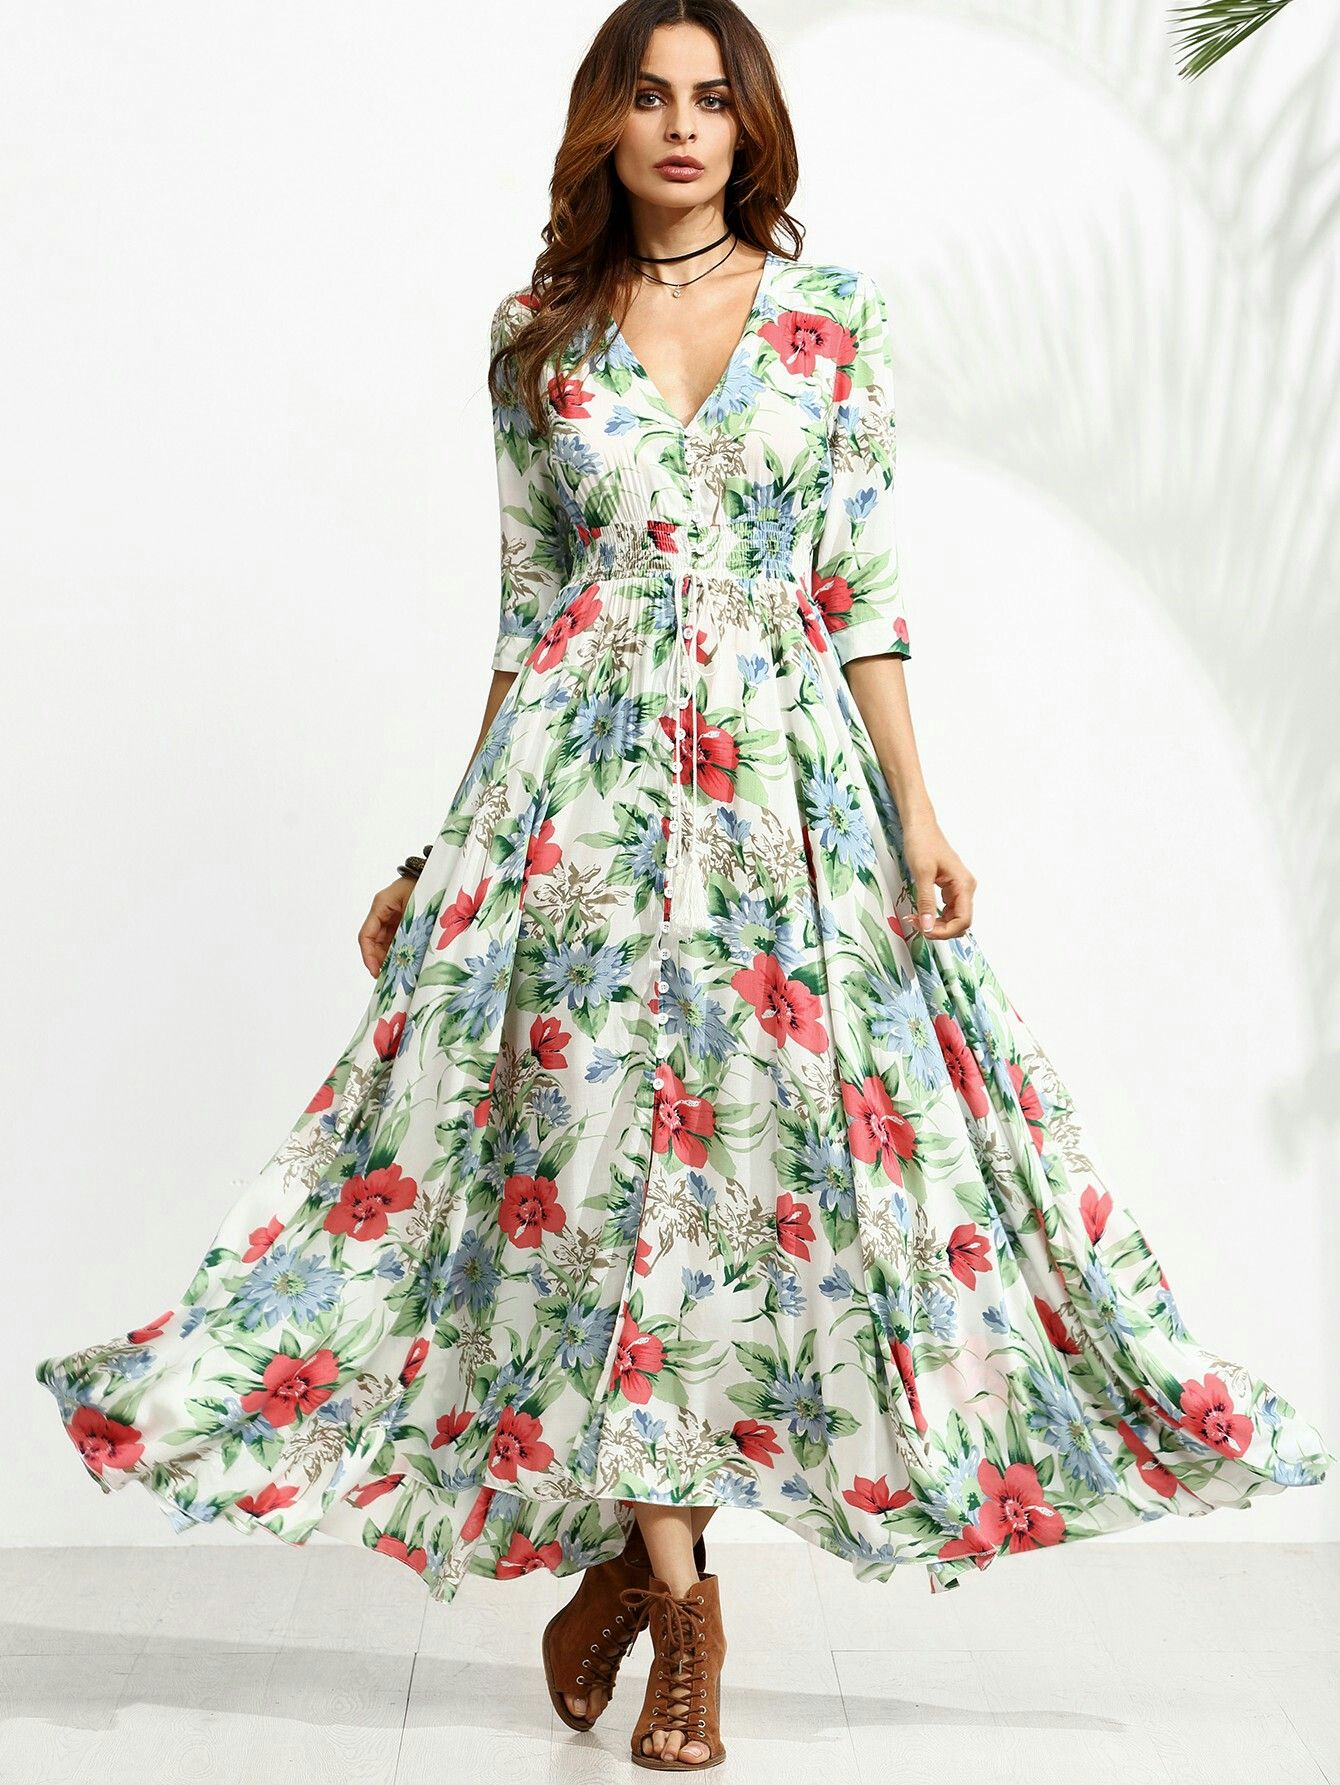 it's a stunning, girly dress. It is very flowly when you walk and is just beautiful.